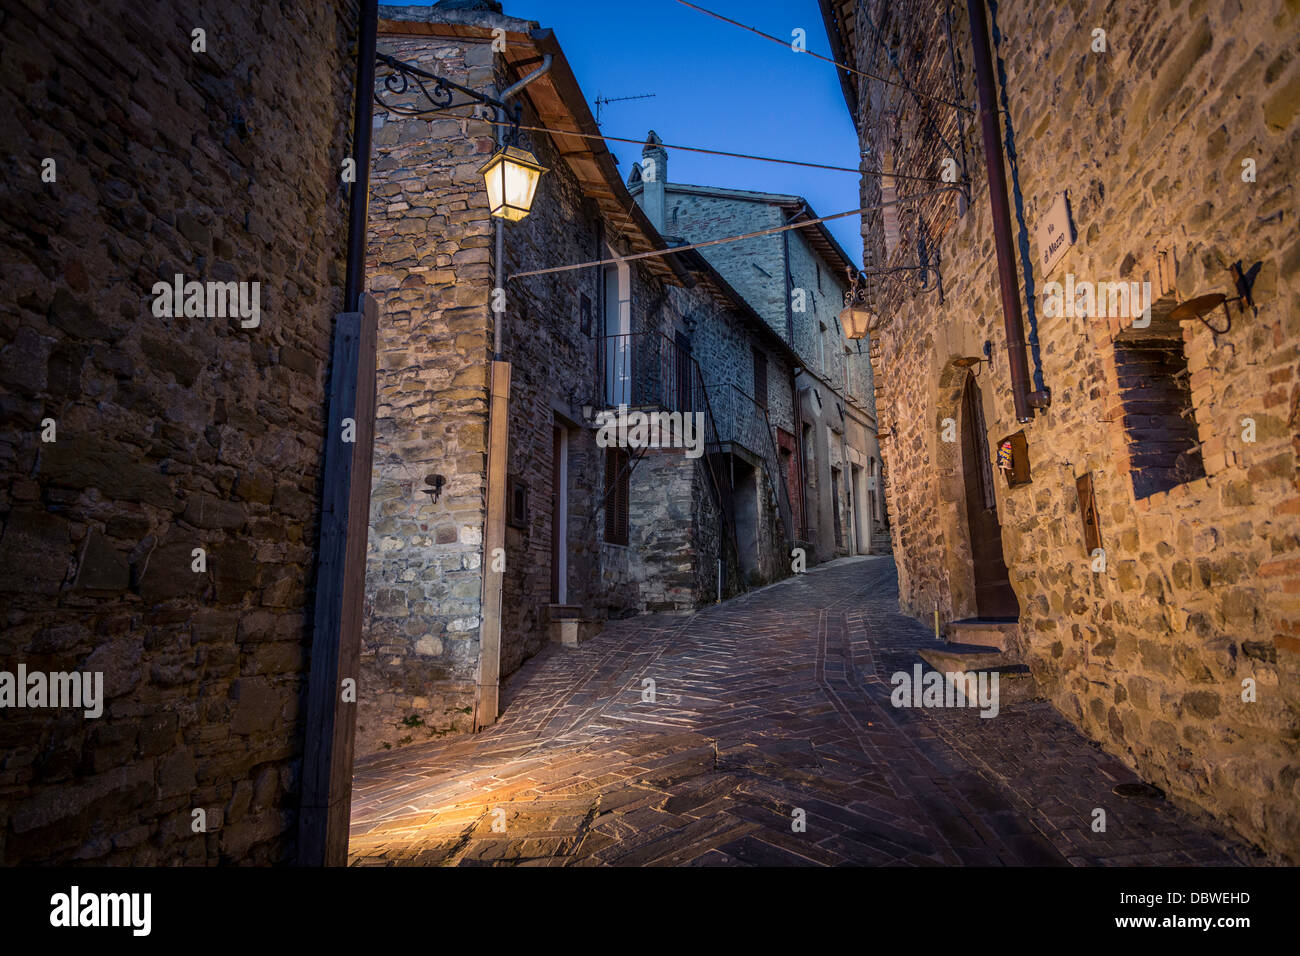 Narrow streets of Europe - Stock Image